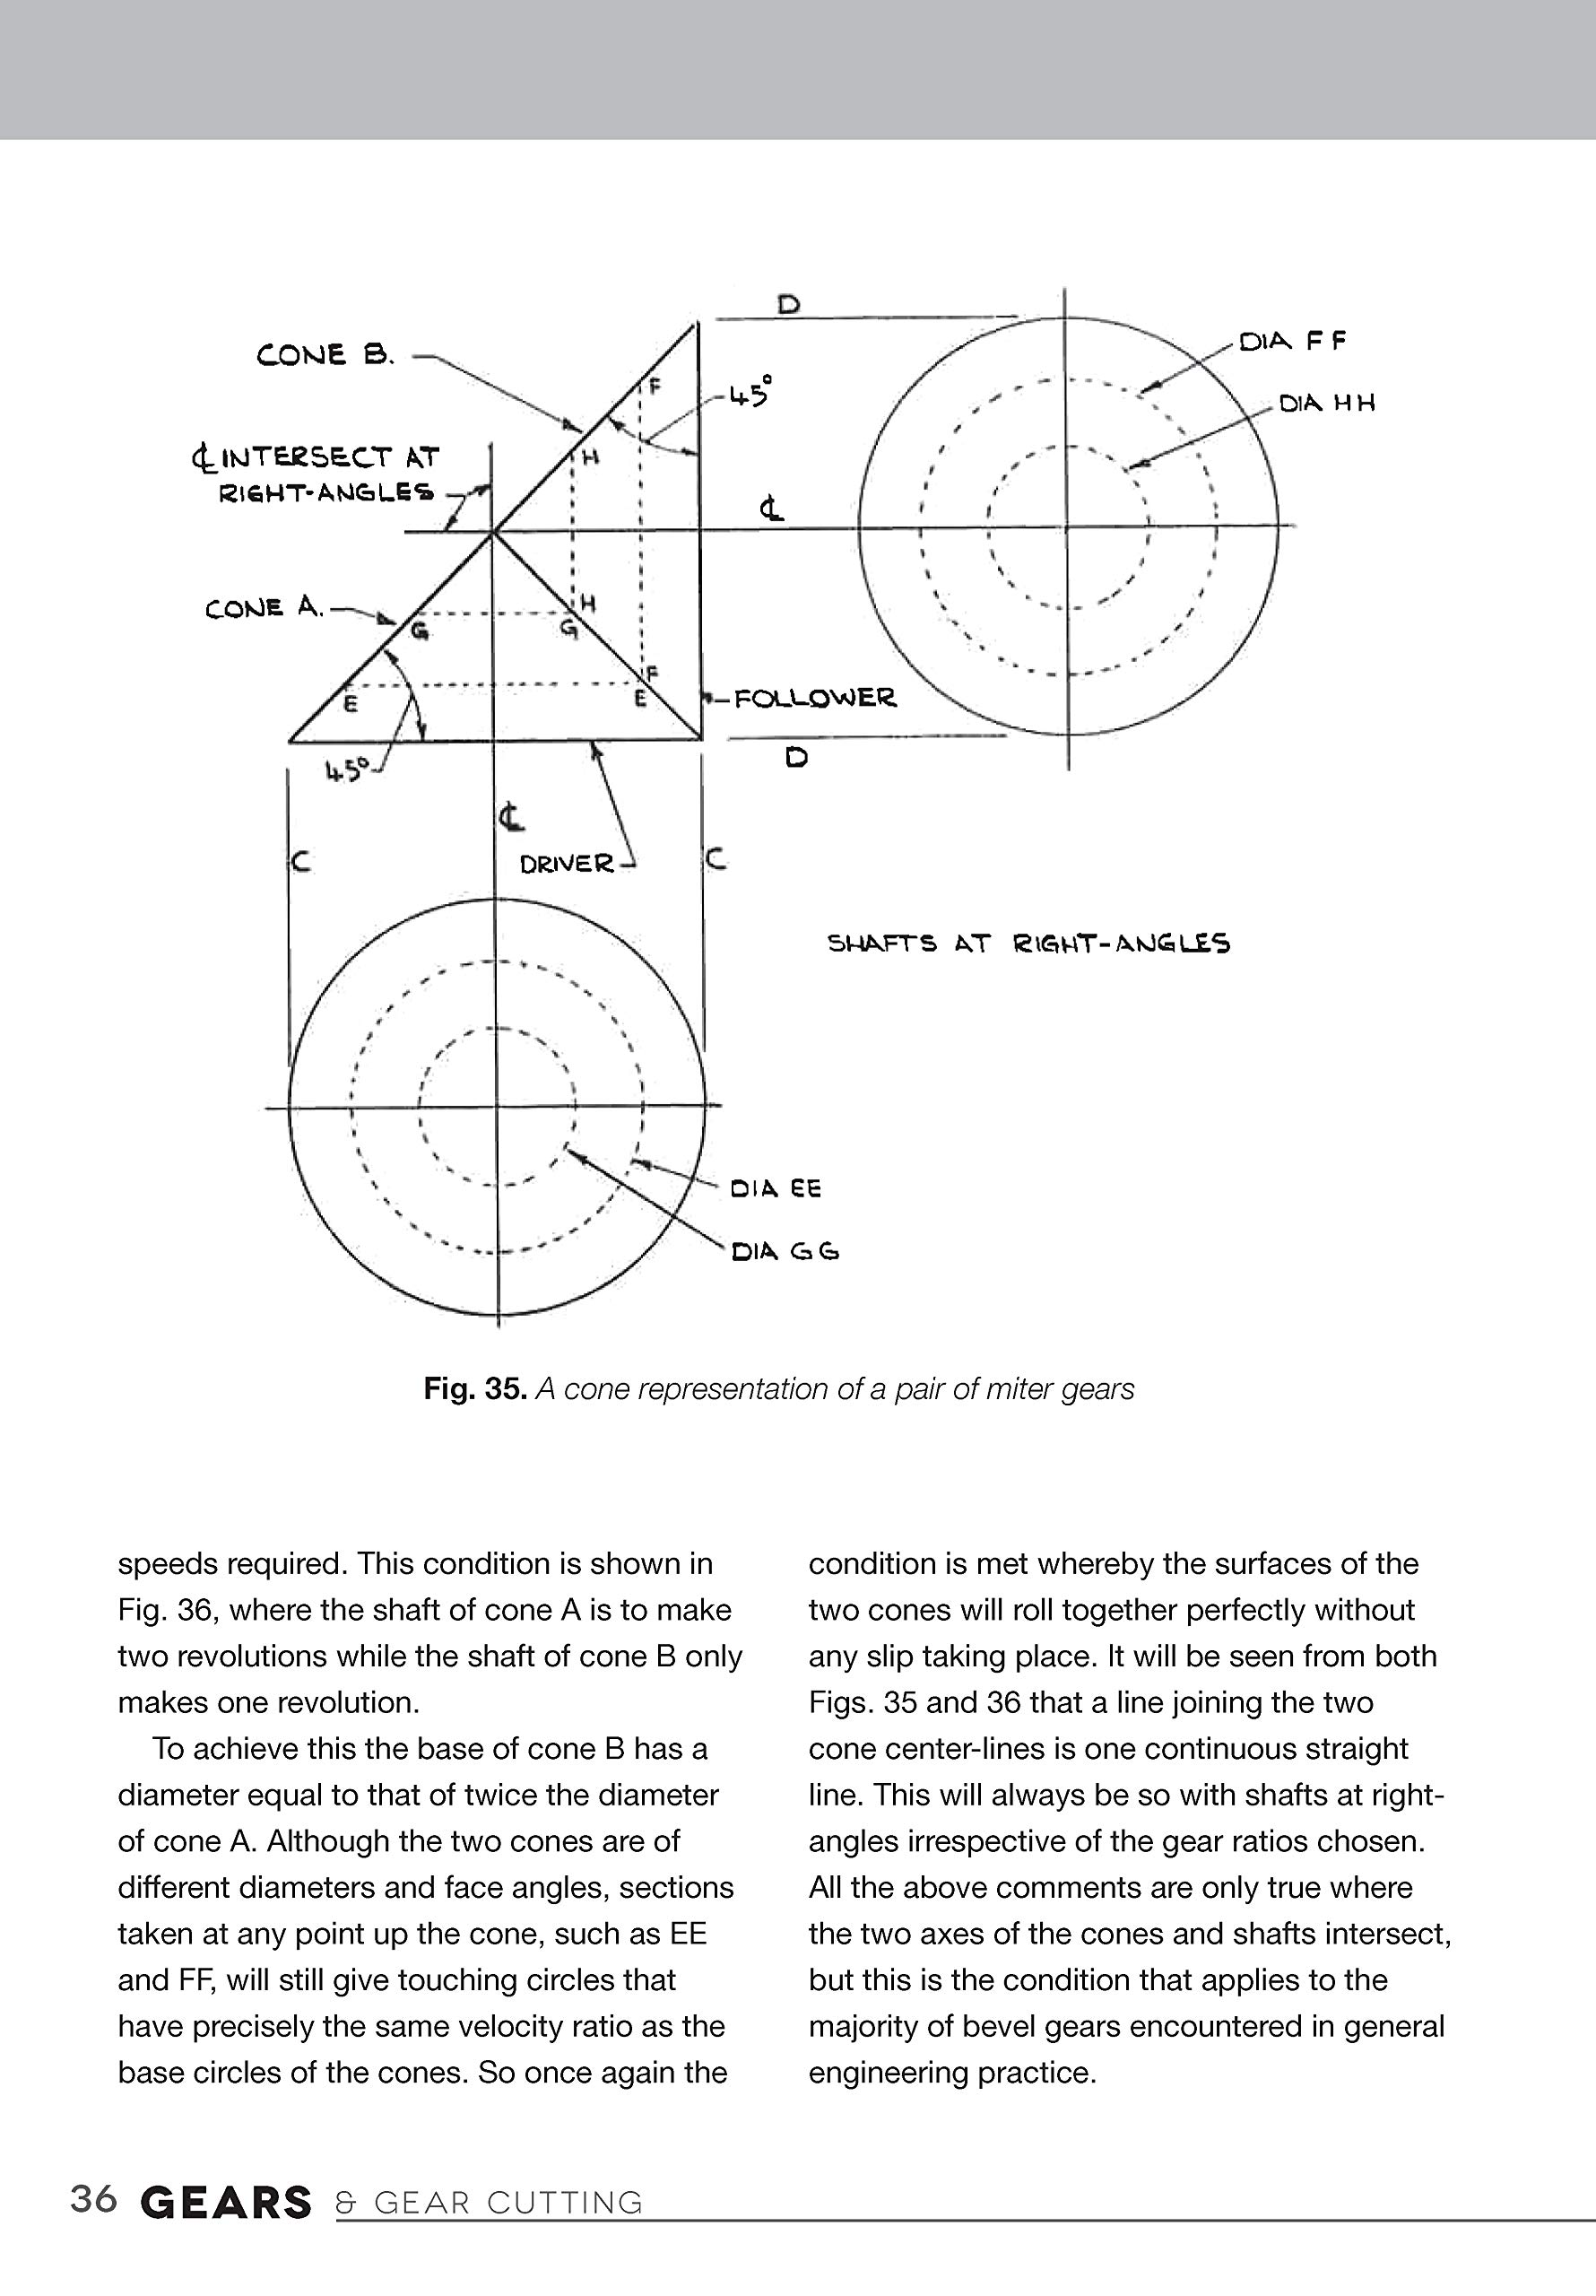 Gears and Gear Cutting for Home Machinists (Fox Chapel Publishing) Practical,  Hands-On Guide to Designing and Cutting Gears Inexpensively on a Lathe or  ...